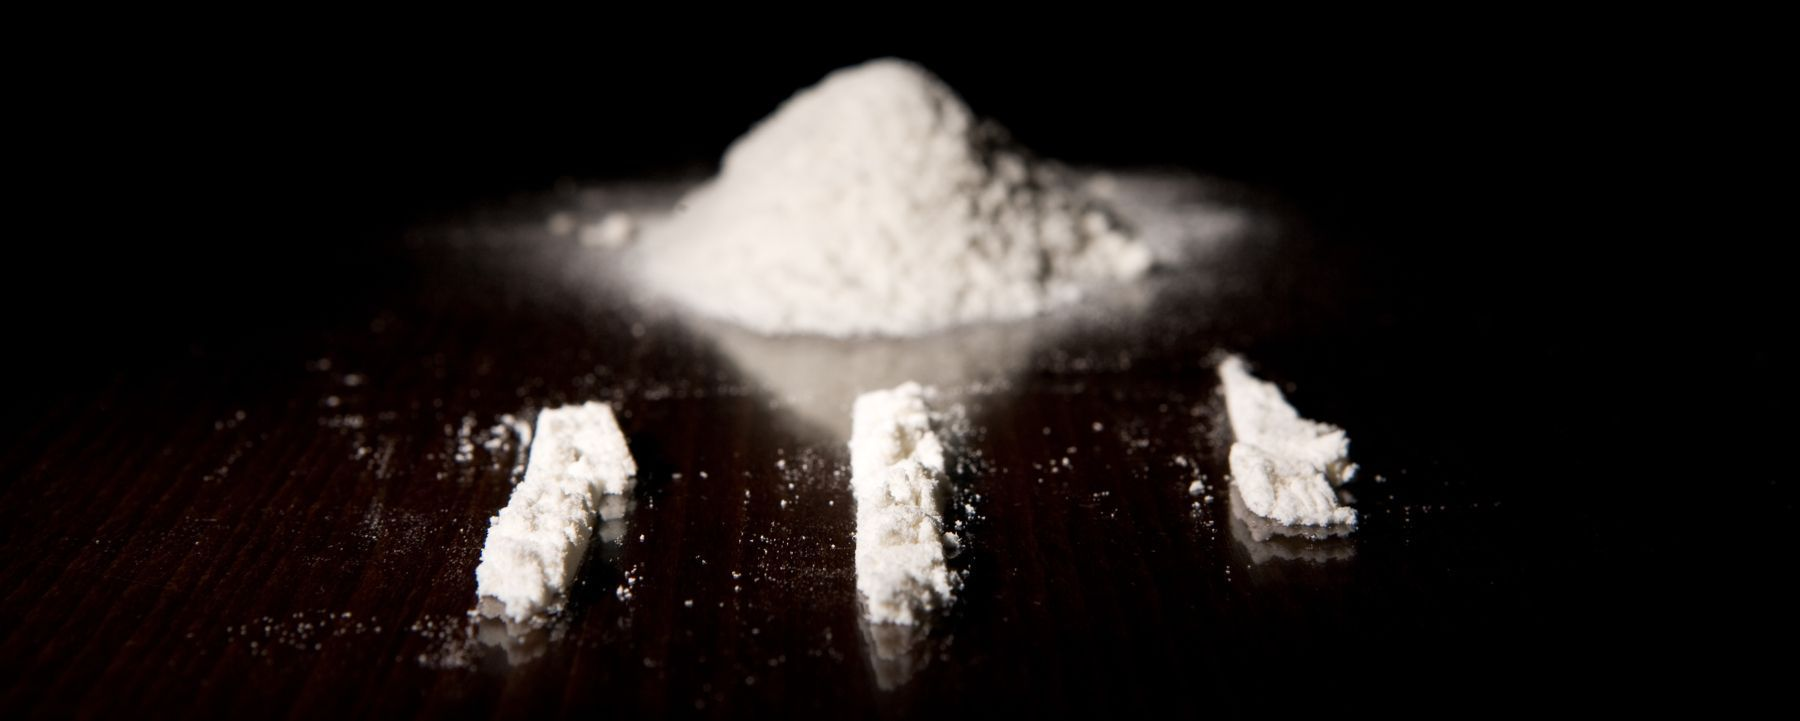 Gene-Edited Skin Patch Prevents Cocaine Overdose in Mice